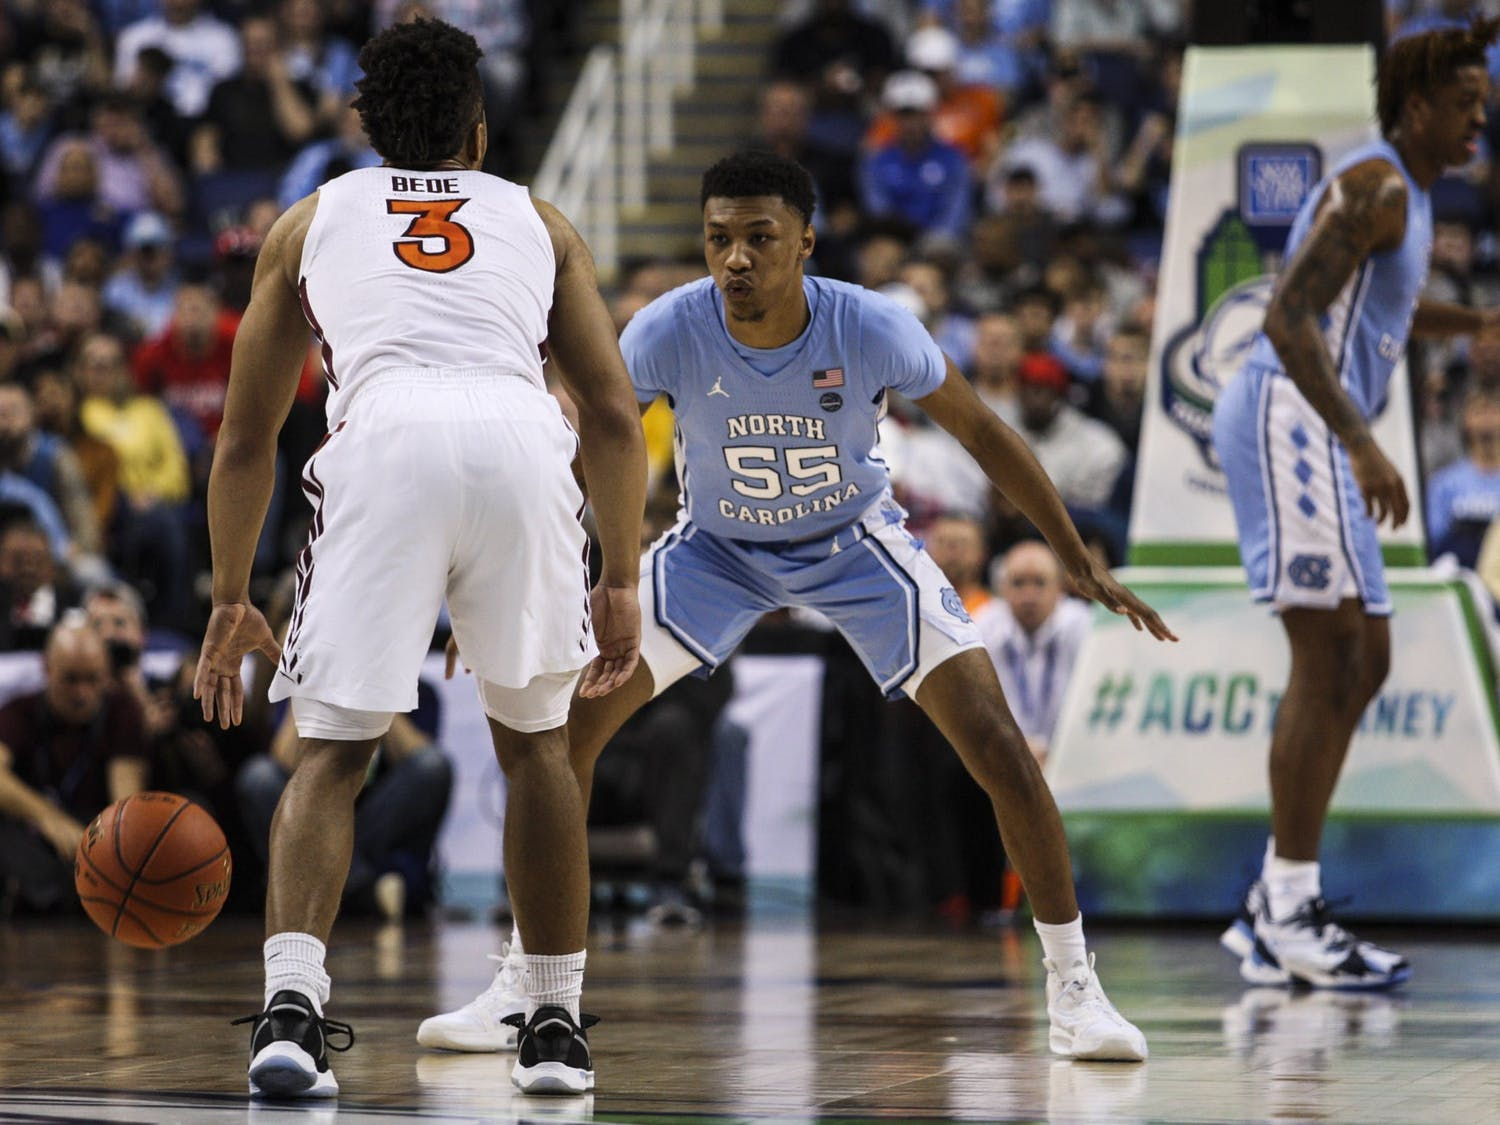 Graduate guard Christian Keeling (55) plays against Virginia Tech's Wabissa Bede (3) during the first round of the ACC tournament in the Greensboro Coliseum Complex on Tuesday, March 10, 2020.